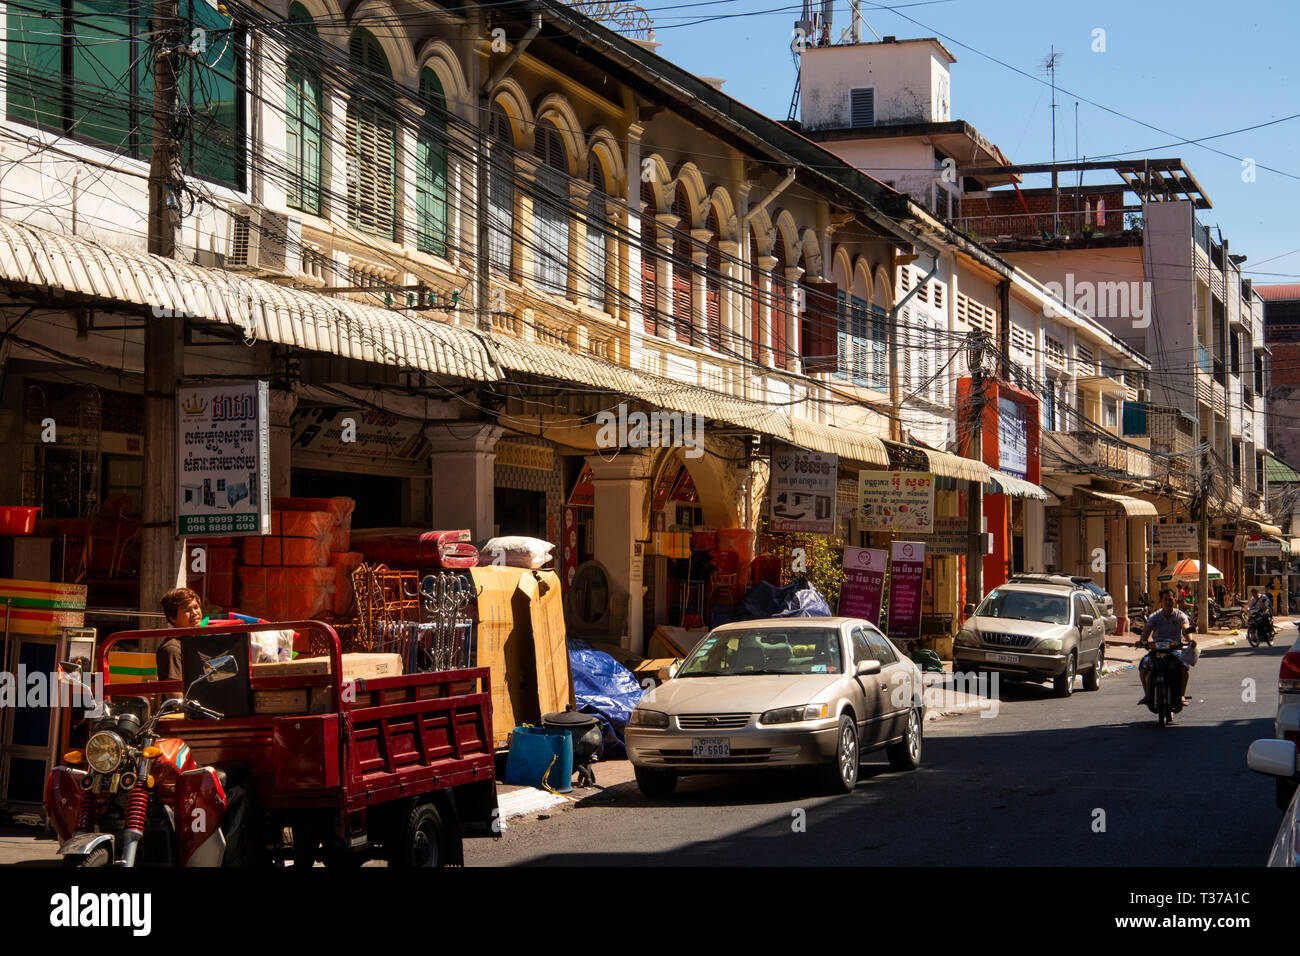 Magnificent Cambodia Kampong Kompong Cham Town Centre Shops In Old French Wiring 101 Akebretraxxcnl